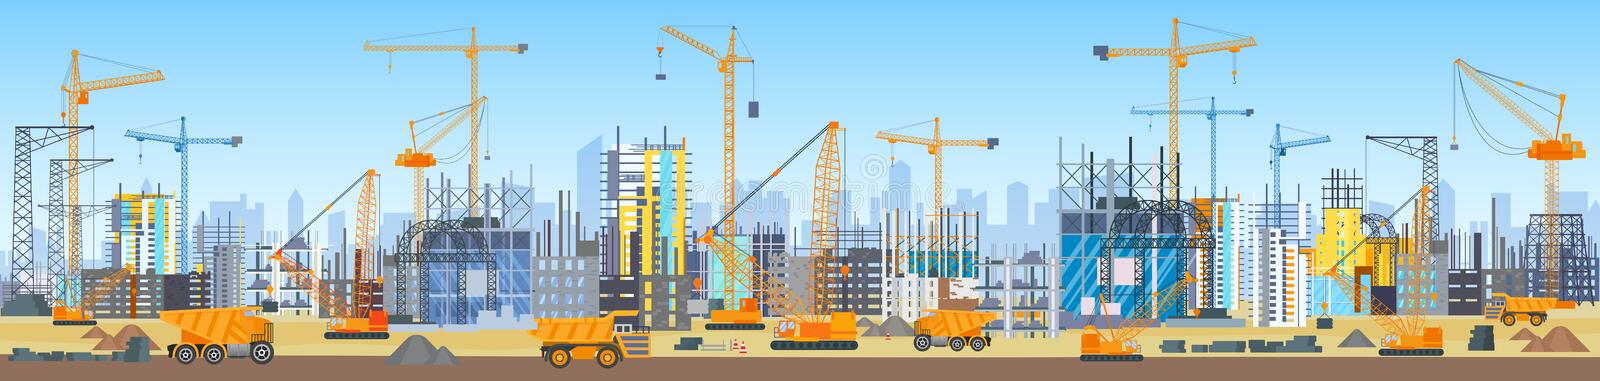 Wide head banner of city skyline construction process. Tower cranes on construction site. Buildings under construction. vector illustration